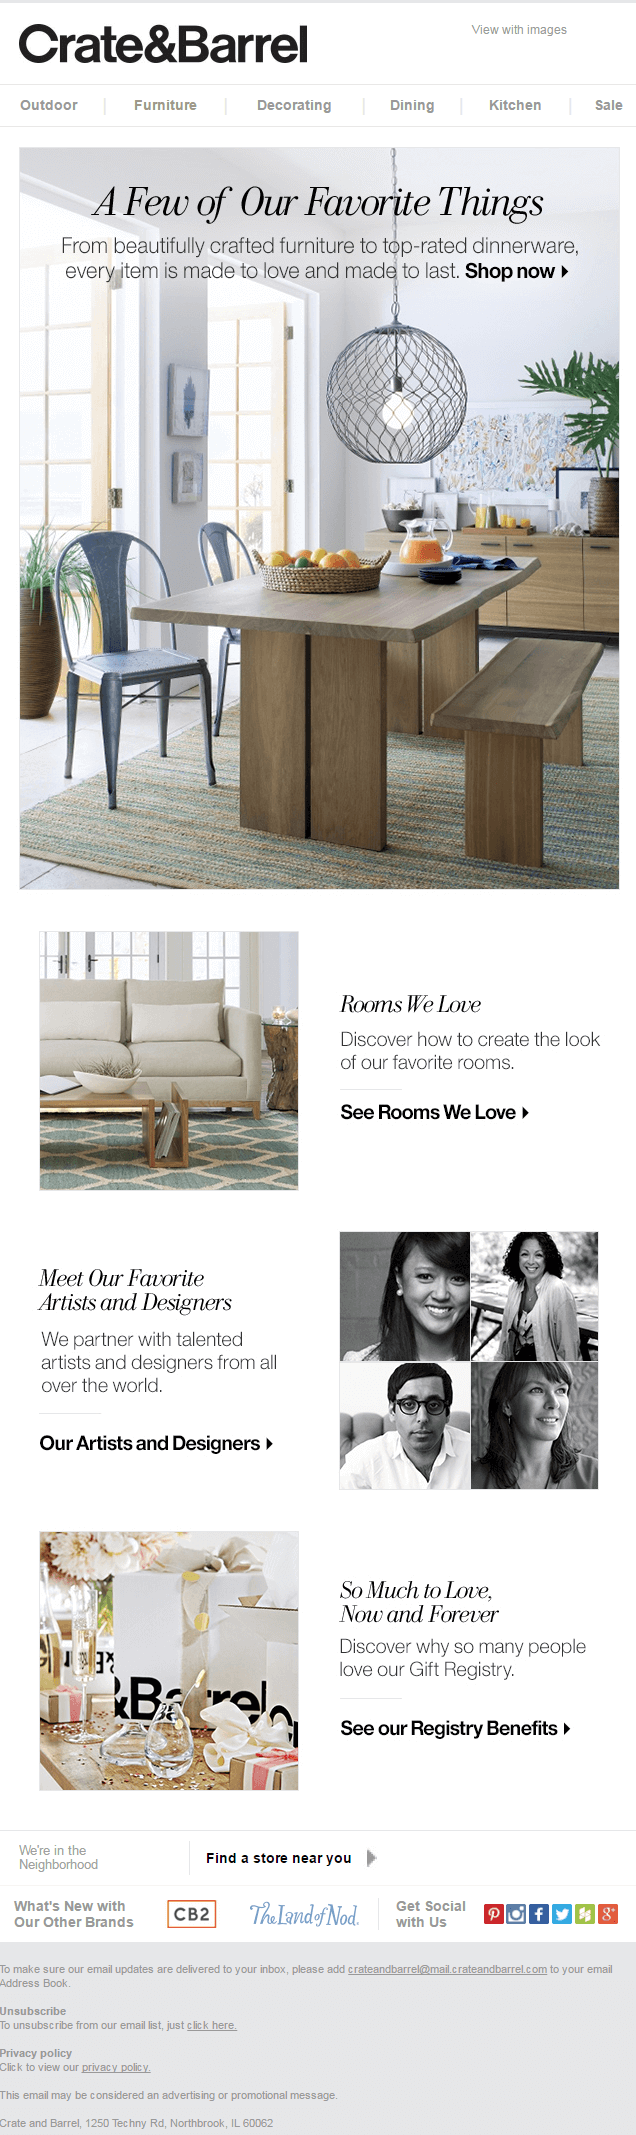 Crate & Barrel Email Example